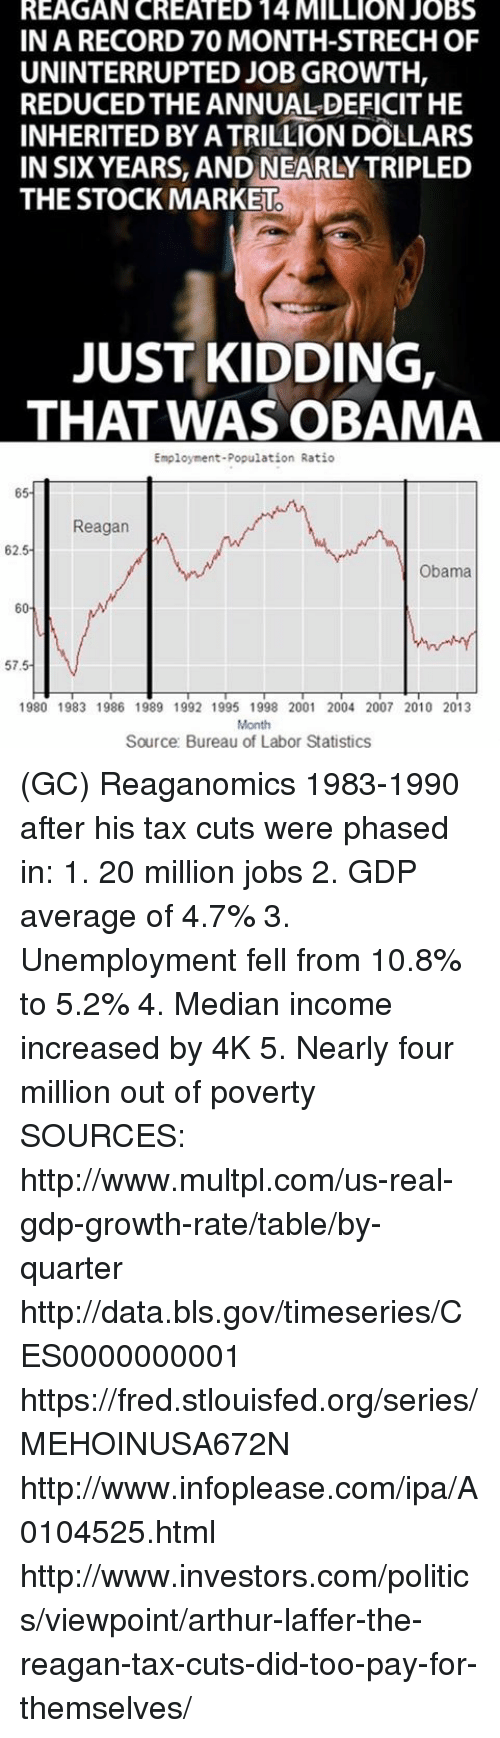 median: REAGAN CREATED 14 MILLION JOBS  IN A RECORD 70 MONTH-STRECHOF  UNINTERRUPTED JOB GROWTH,  REDUCED THE ANNUALDEFICIT HE  INHERITED BY ATRILLION DOLLARS  IN SIX YEARS, AND NEARLY TRIPLED  THE STOCK MARKET  JUST KIDDING,  THAT WAS OBAMA  Employment-Population Ratio  65  Reagan  w  62.5  Obama  60  57.5  1980 1983 1986 1989 1992 1995 1998 2001 2004 2007 2010 2013  Month  Source: Bureau of Labor Statistics (GC) Reaganomics 1983-1990 after his tax cuts were phased in:  1. 20 million jobs 2. GDP average of 4.7% 3. Unemployment fell from 10.8% to 5.2% 4. Median income increased by 4K 5. Nearly four million out of poverty  SOURCES: http://www.multpl.com/us-real-gdp-growth-rate/table/by-quarter http://data.bls.gov/timeseries/CES0000000001 https://fred.stlouisfed.org/series/MEHOINUSA672N http://www.infoplease.com/ipa/A0104525.html http://www.investors.com/politics/viewpoint/arthur-laffer-the-reagan-tax-cuts-did-too-pay-for-themselves/